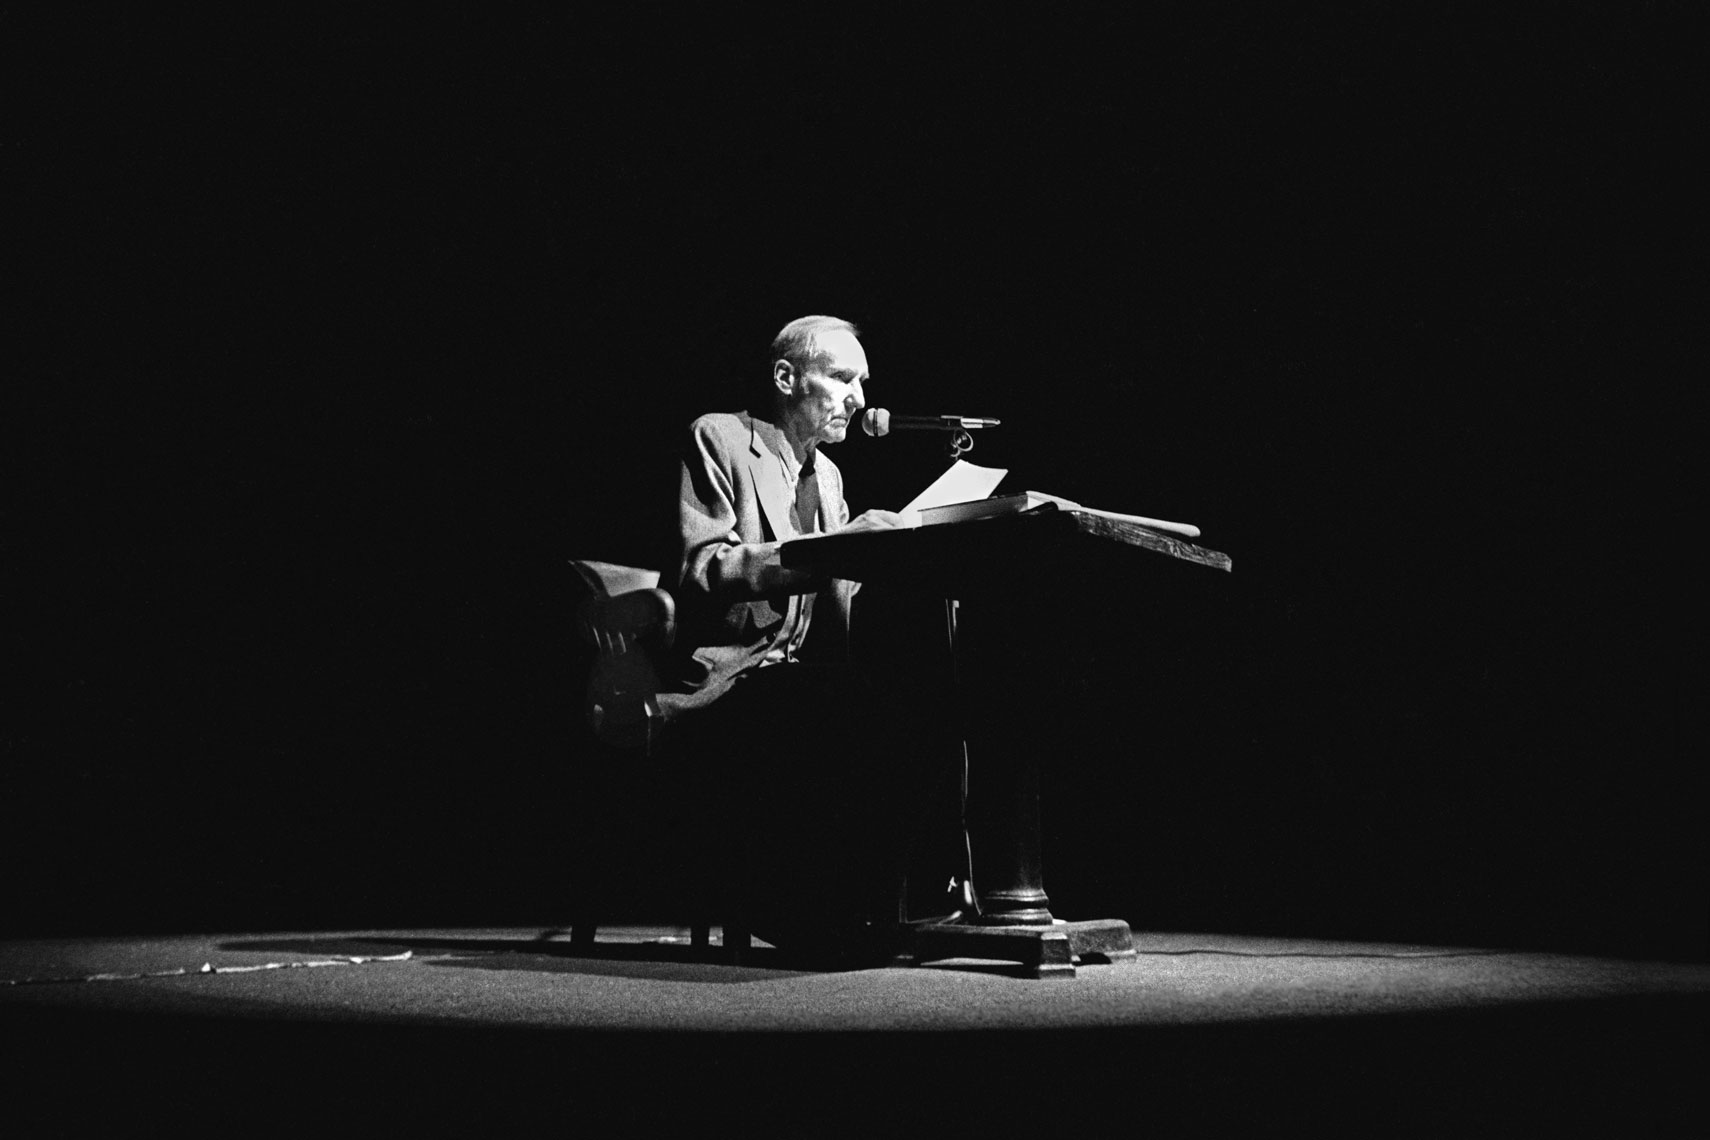 34_William-S-Burroughs-Poetry-Reading_Irving-Plaza_0581.jpg